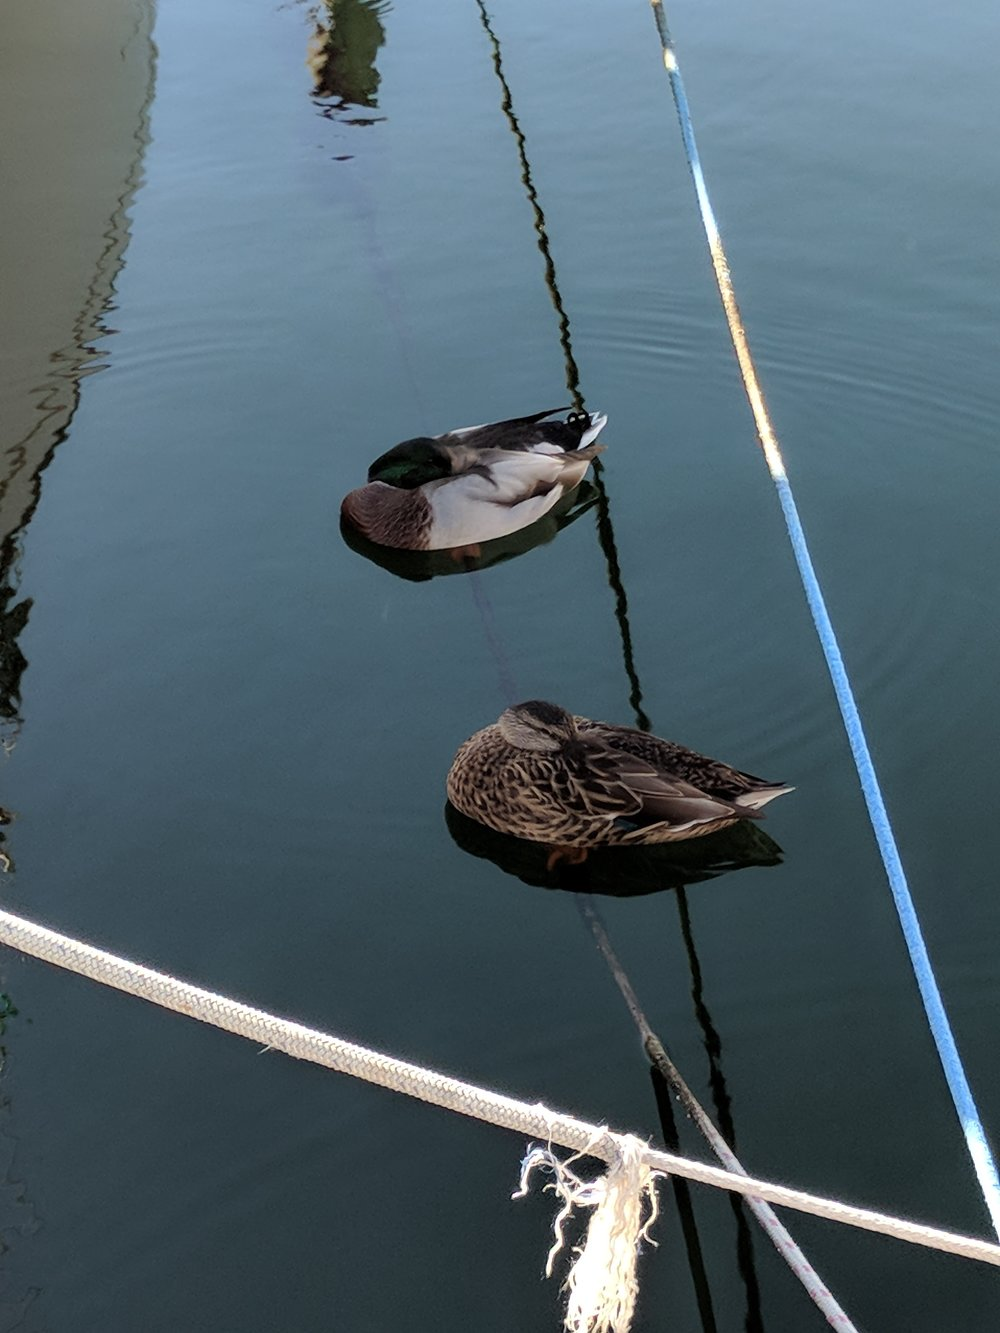 Ducks sleeping on the water.